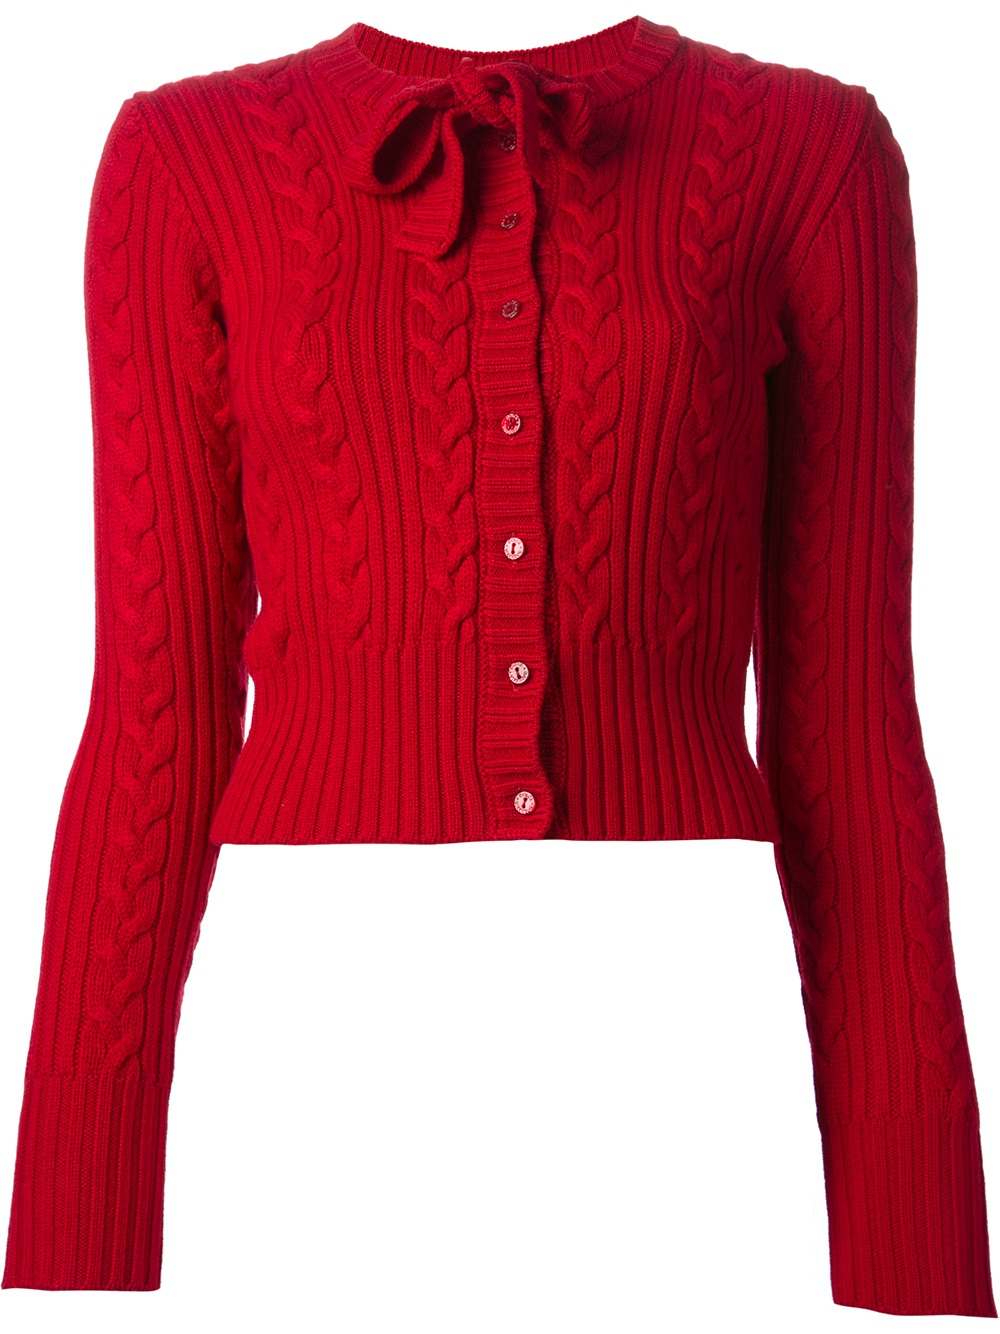 Dolce & gabbana Cable Knit Cardigan in Red | Lyst